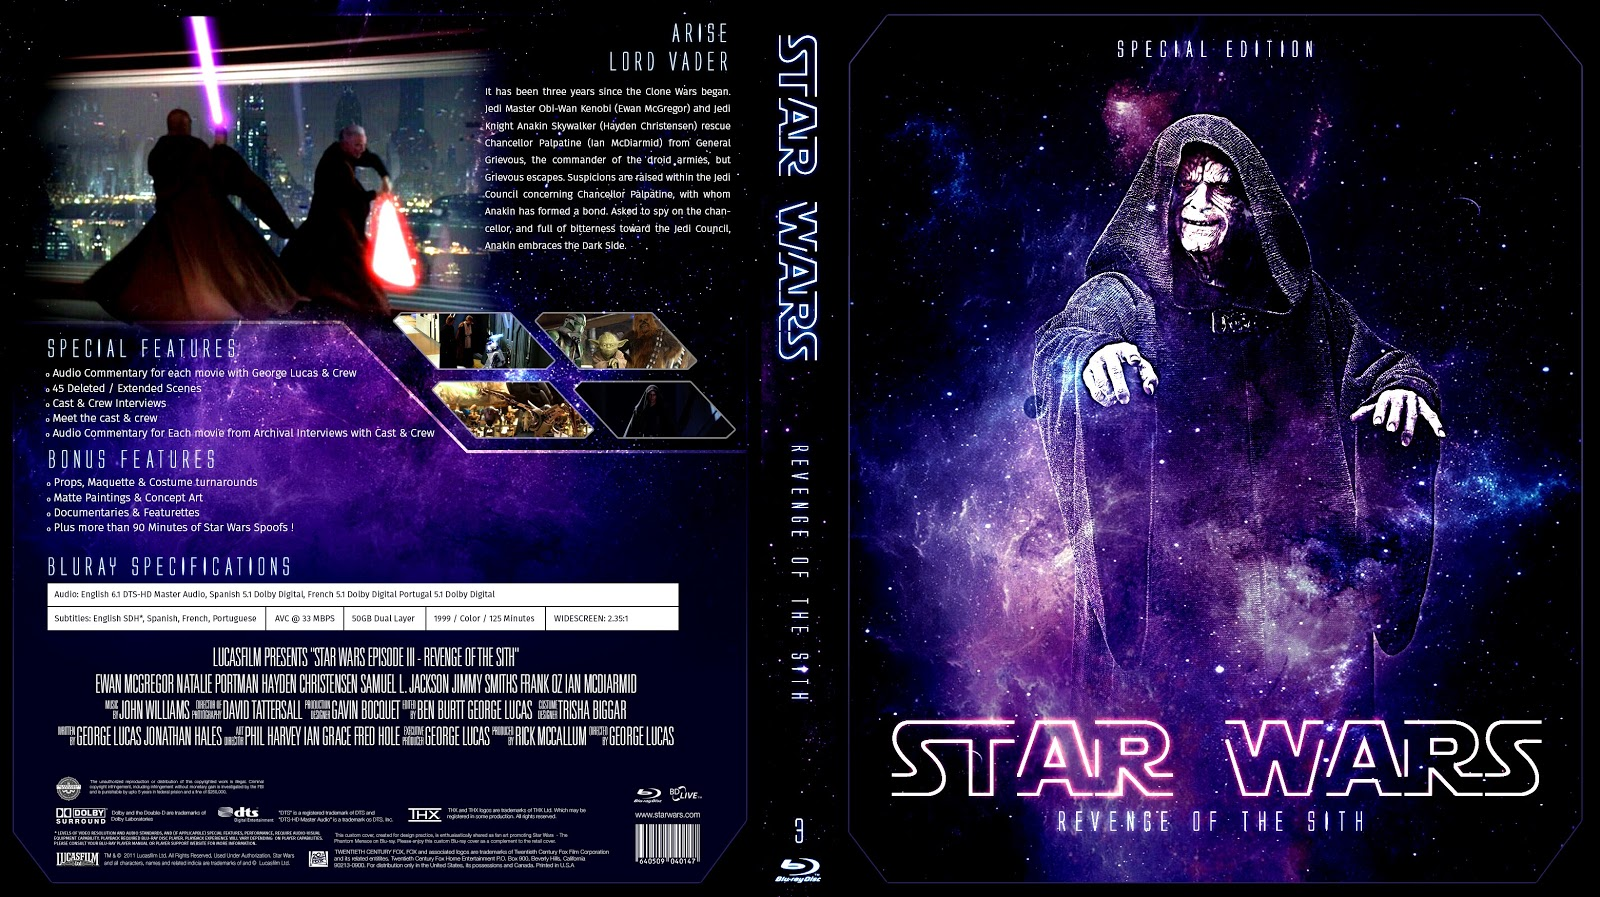 Star Wars Episode Iii Revenge Of The Sith Bluray Cover Cover Addict Free Dvd Bluray Covers And Movie Posters